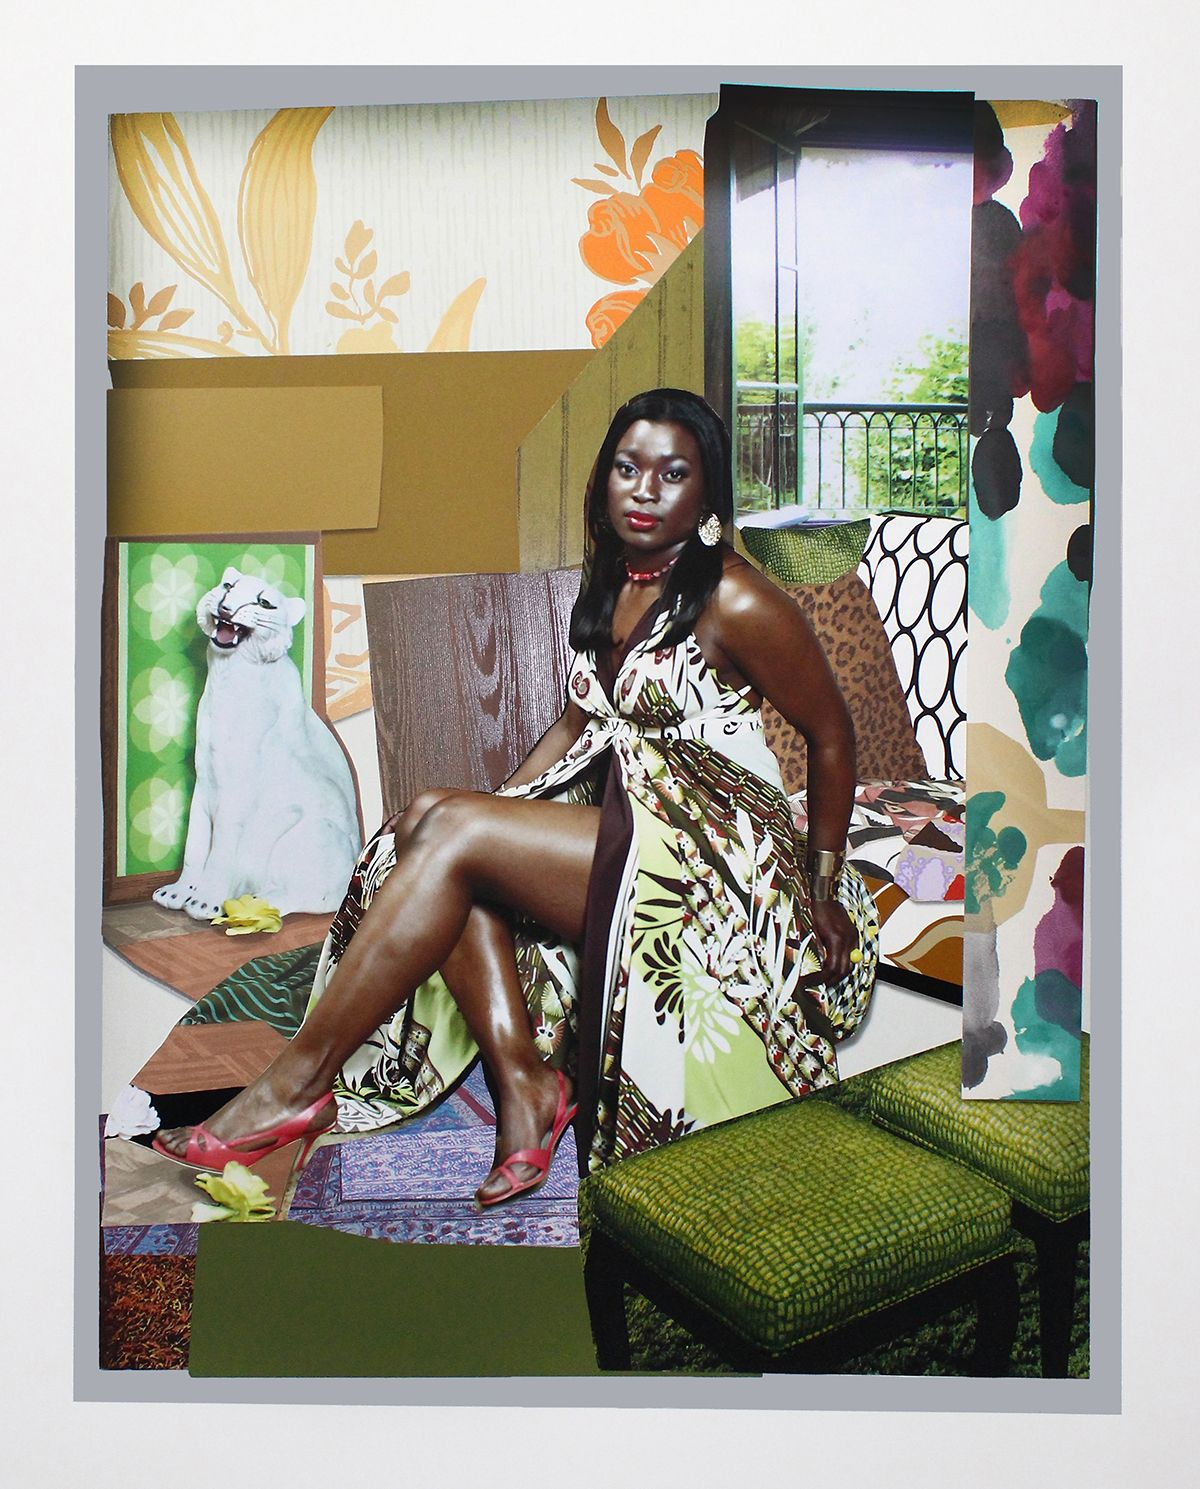 Mickalene Thomas Art For Sale I've been good to me Signed 2015 Price